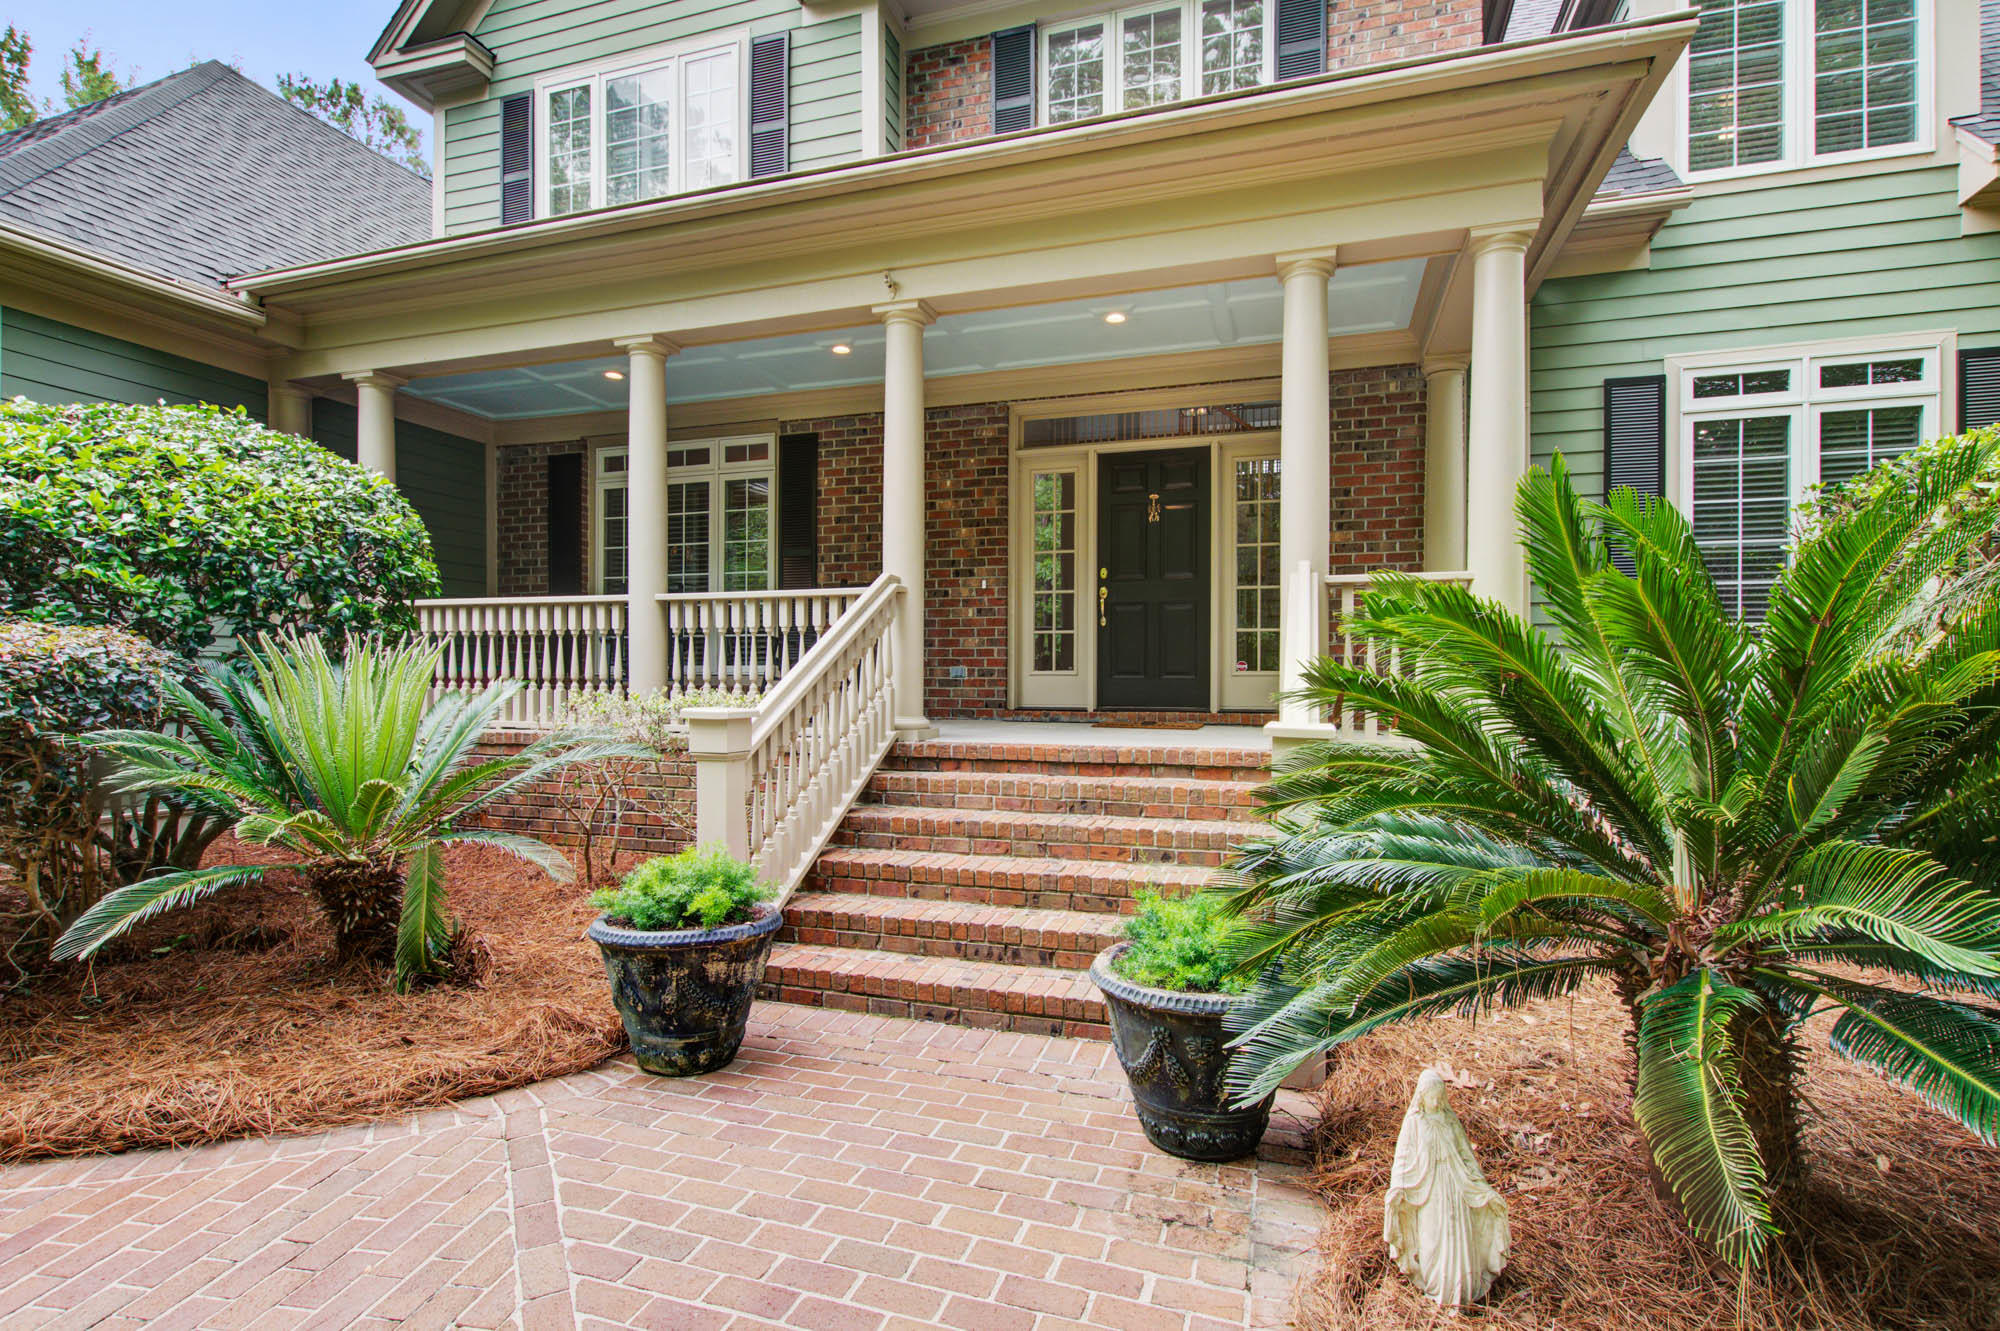 Dunes West Homes For Sale - 2069 Shell Ring, Mount Pleasant, SC - 25